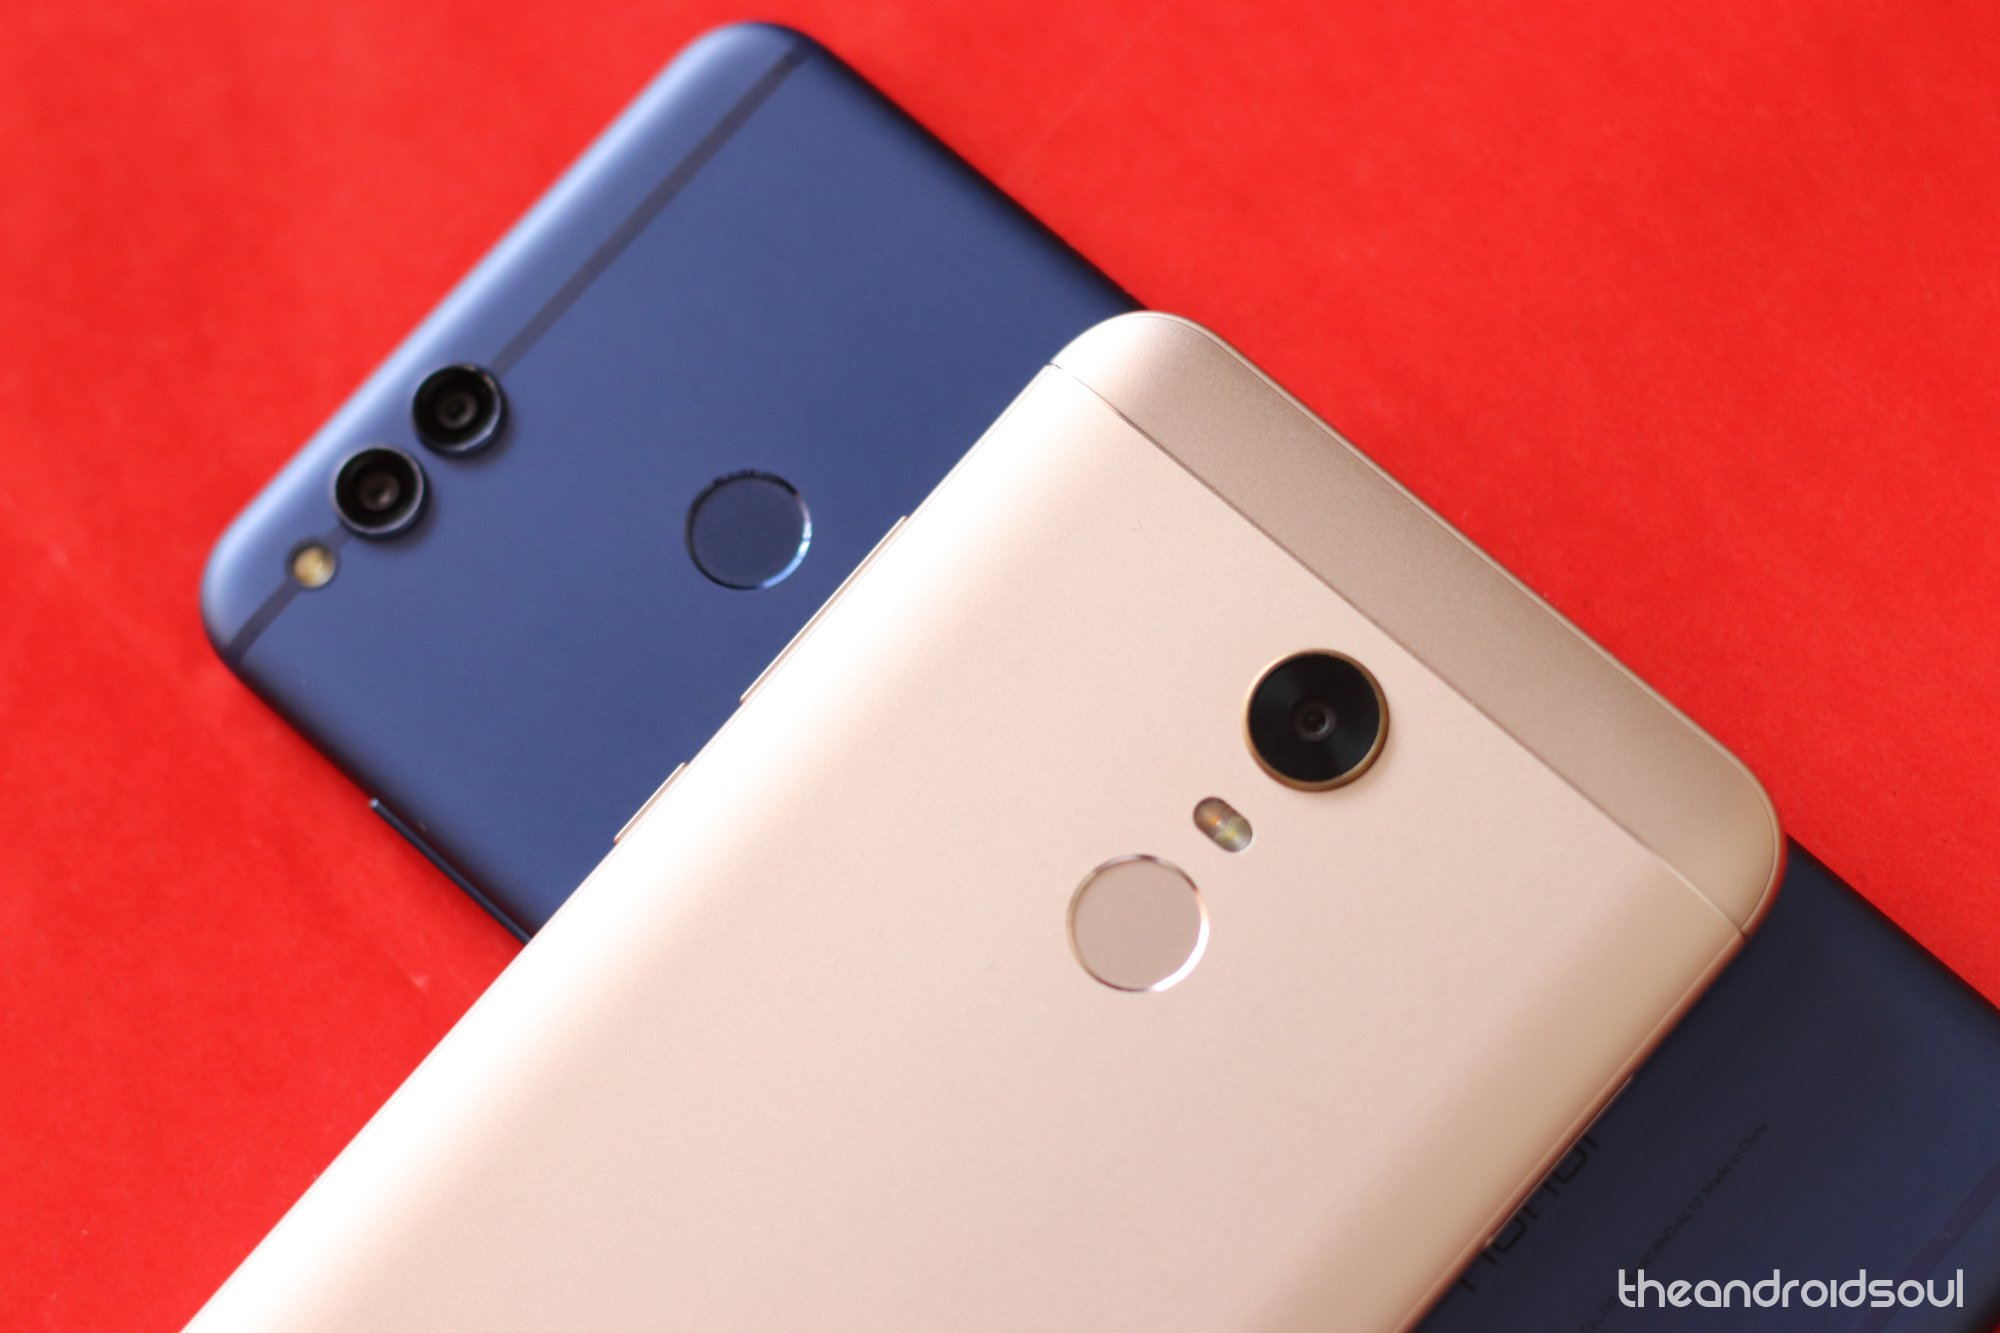 redmi 5 plus and Honor 7x comparison